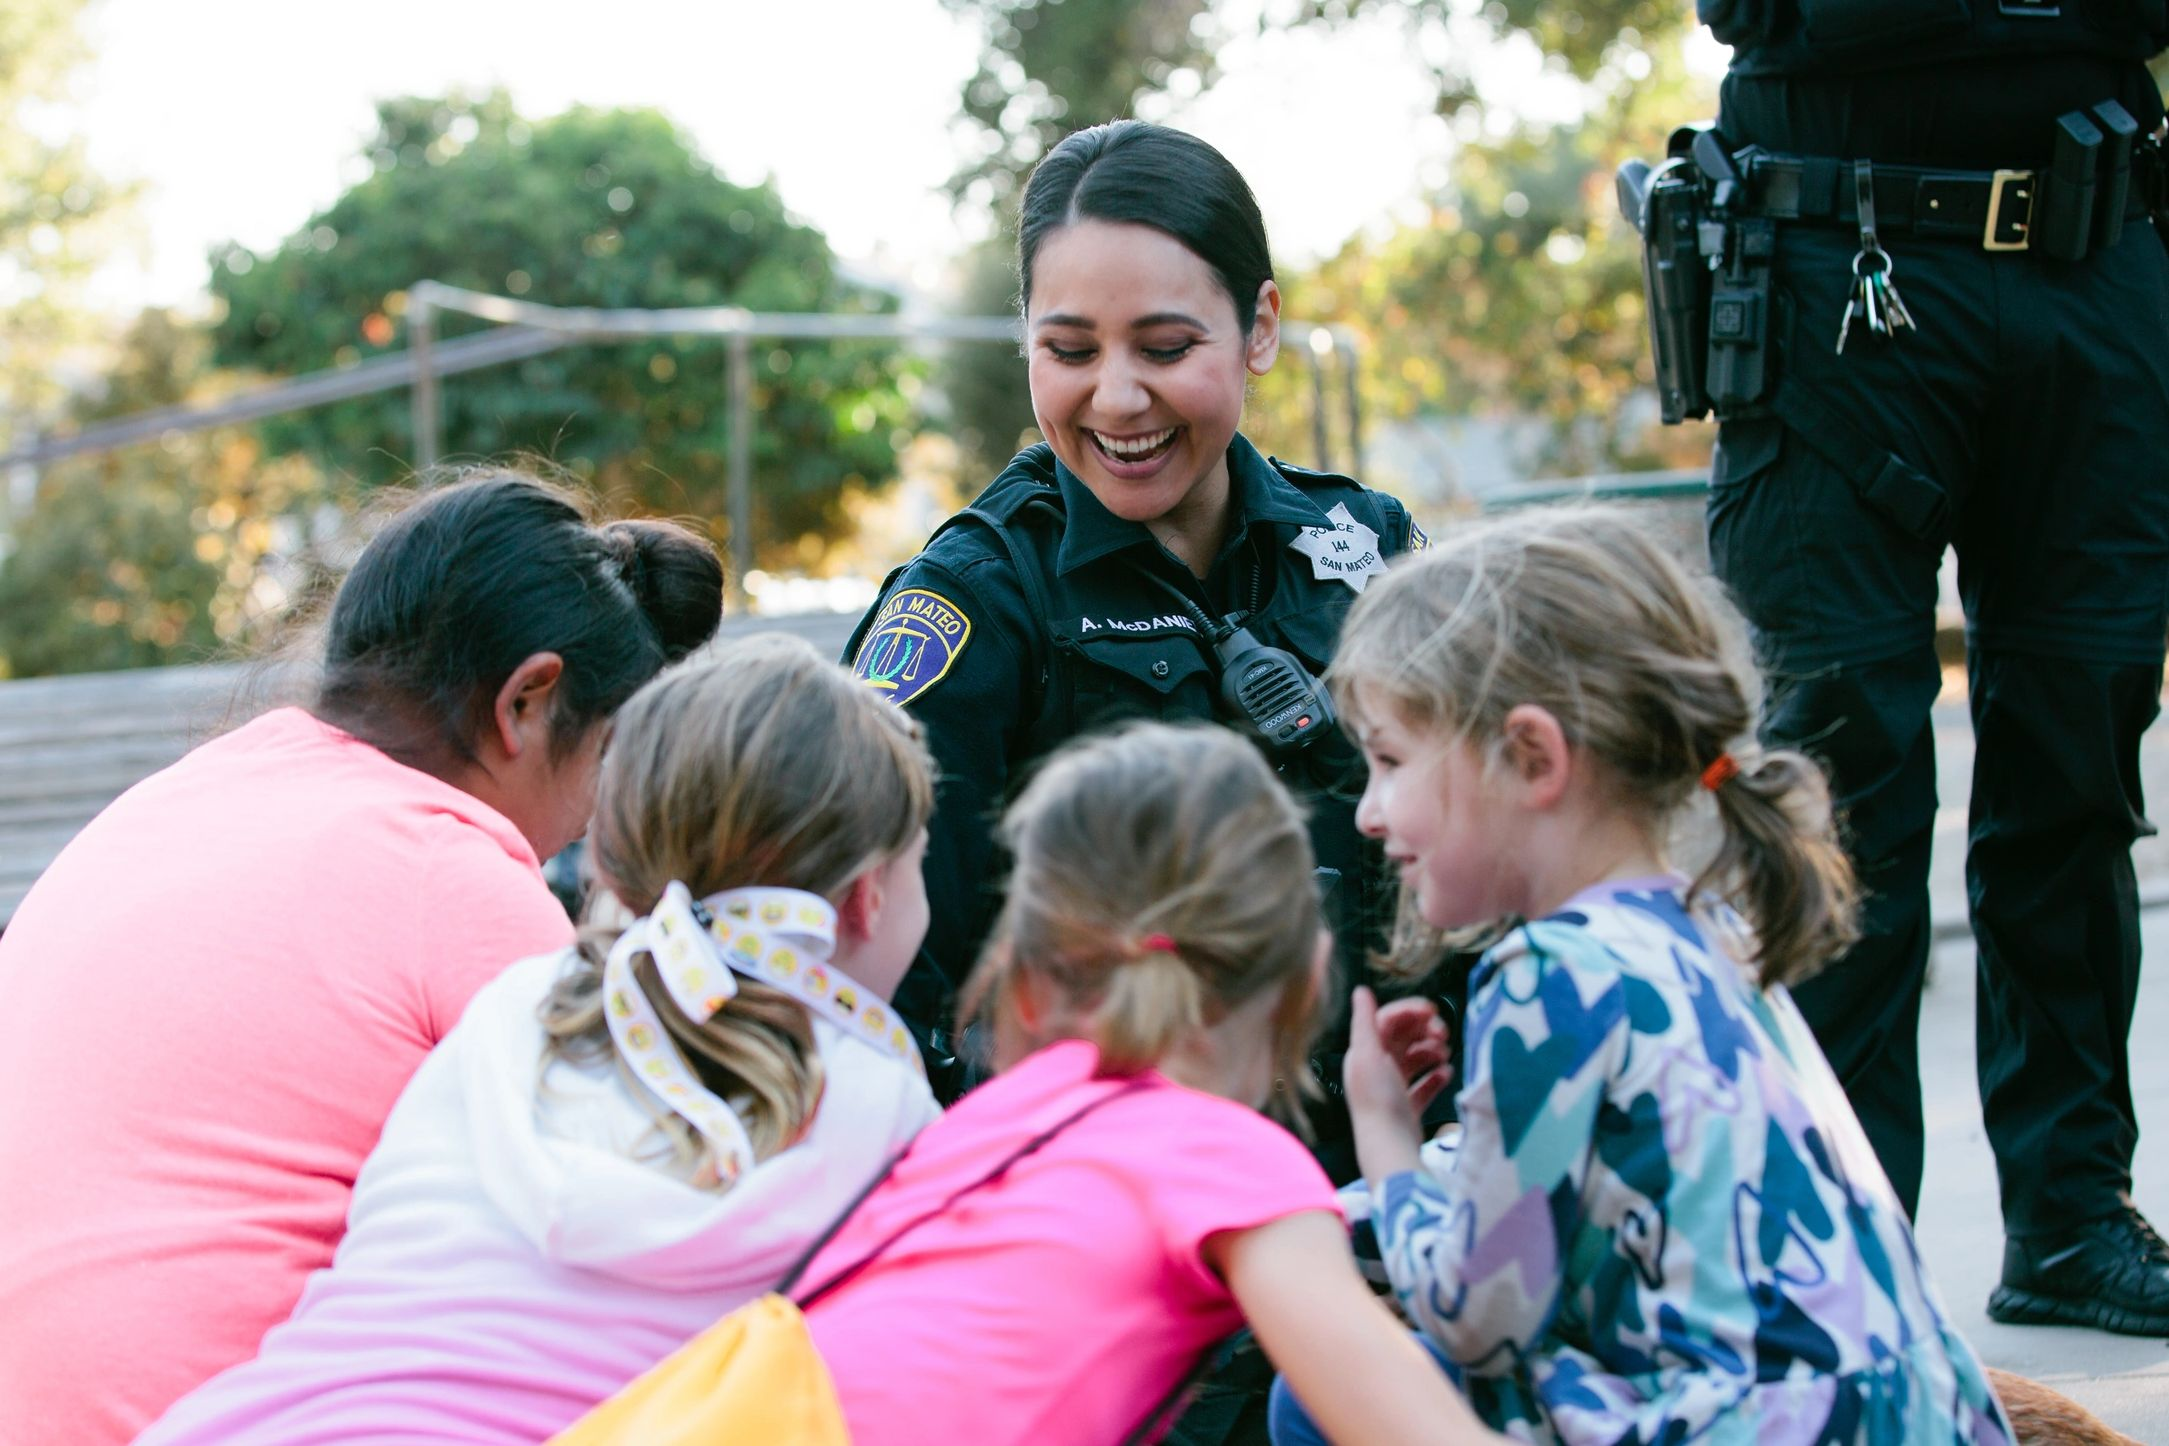 Police officers surrounded by children and a police canine.